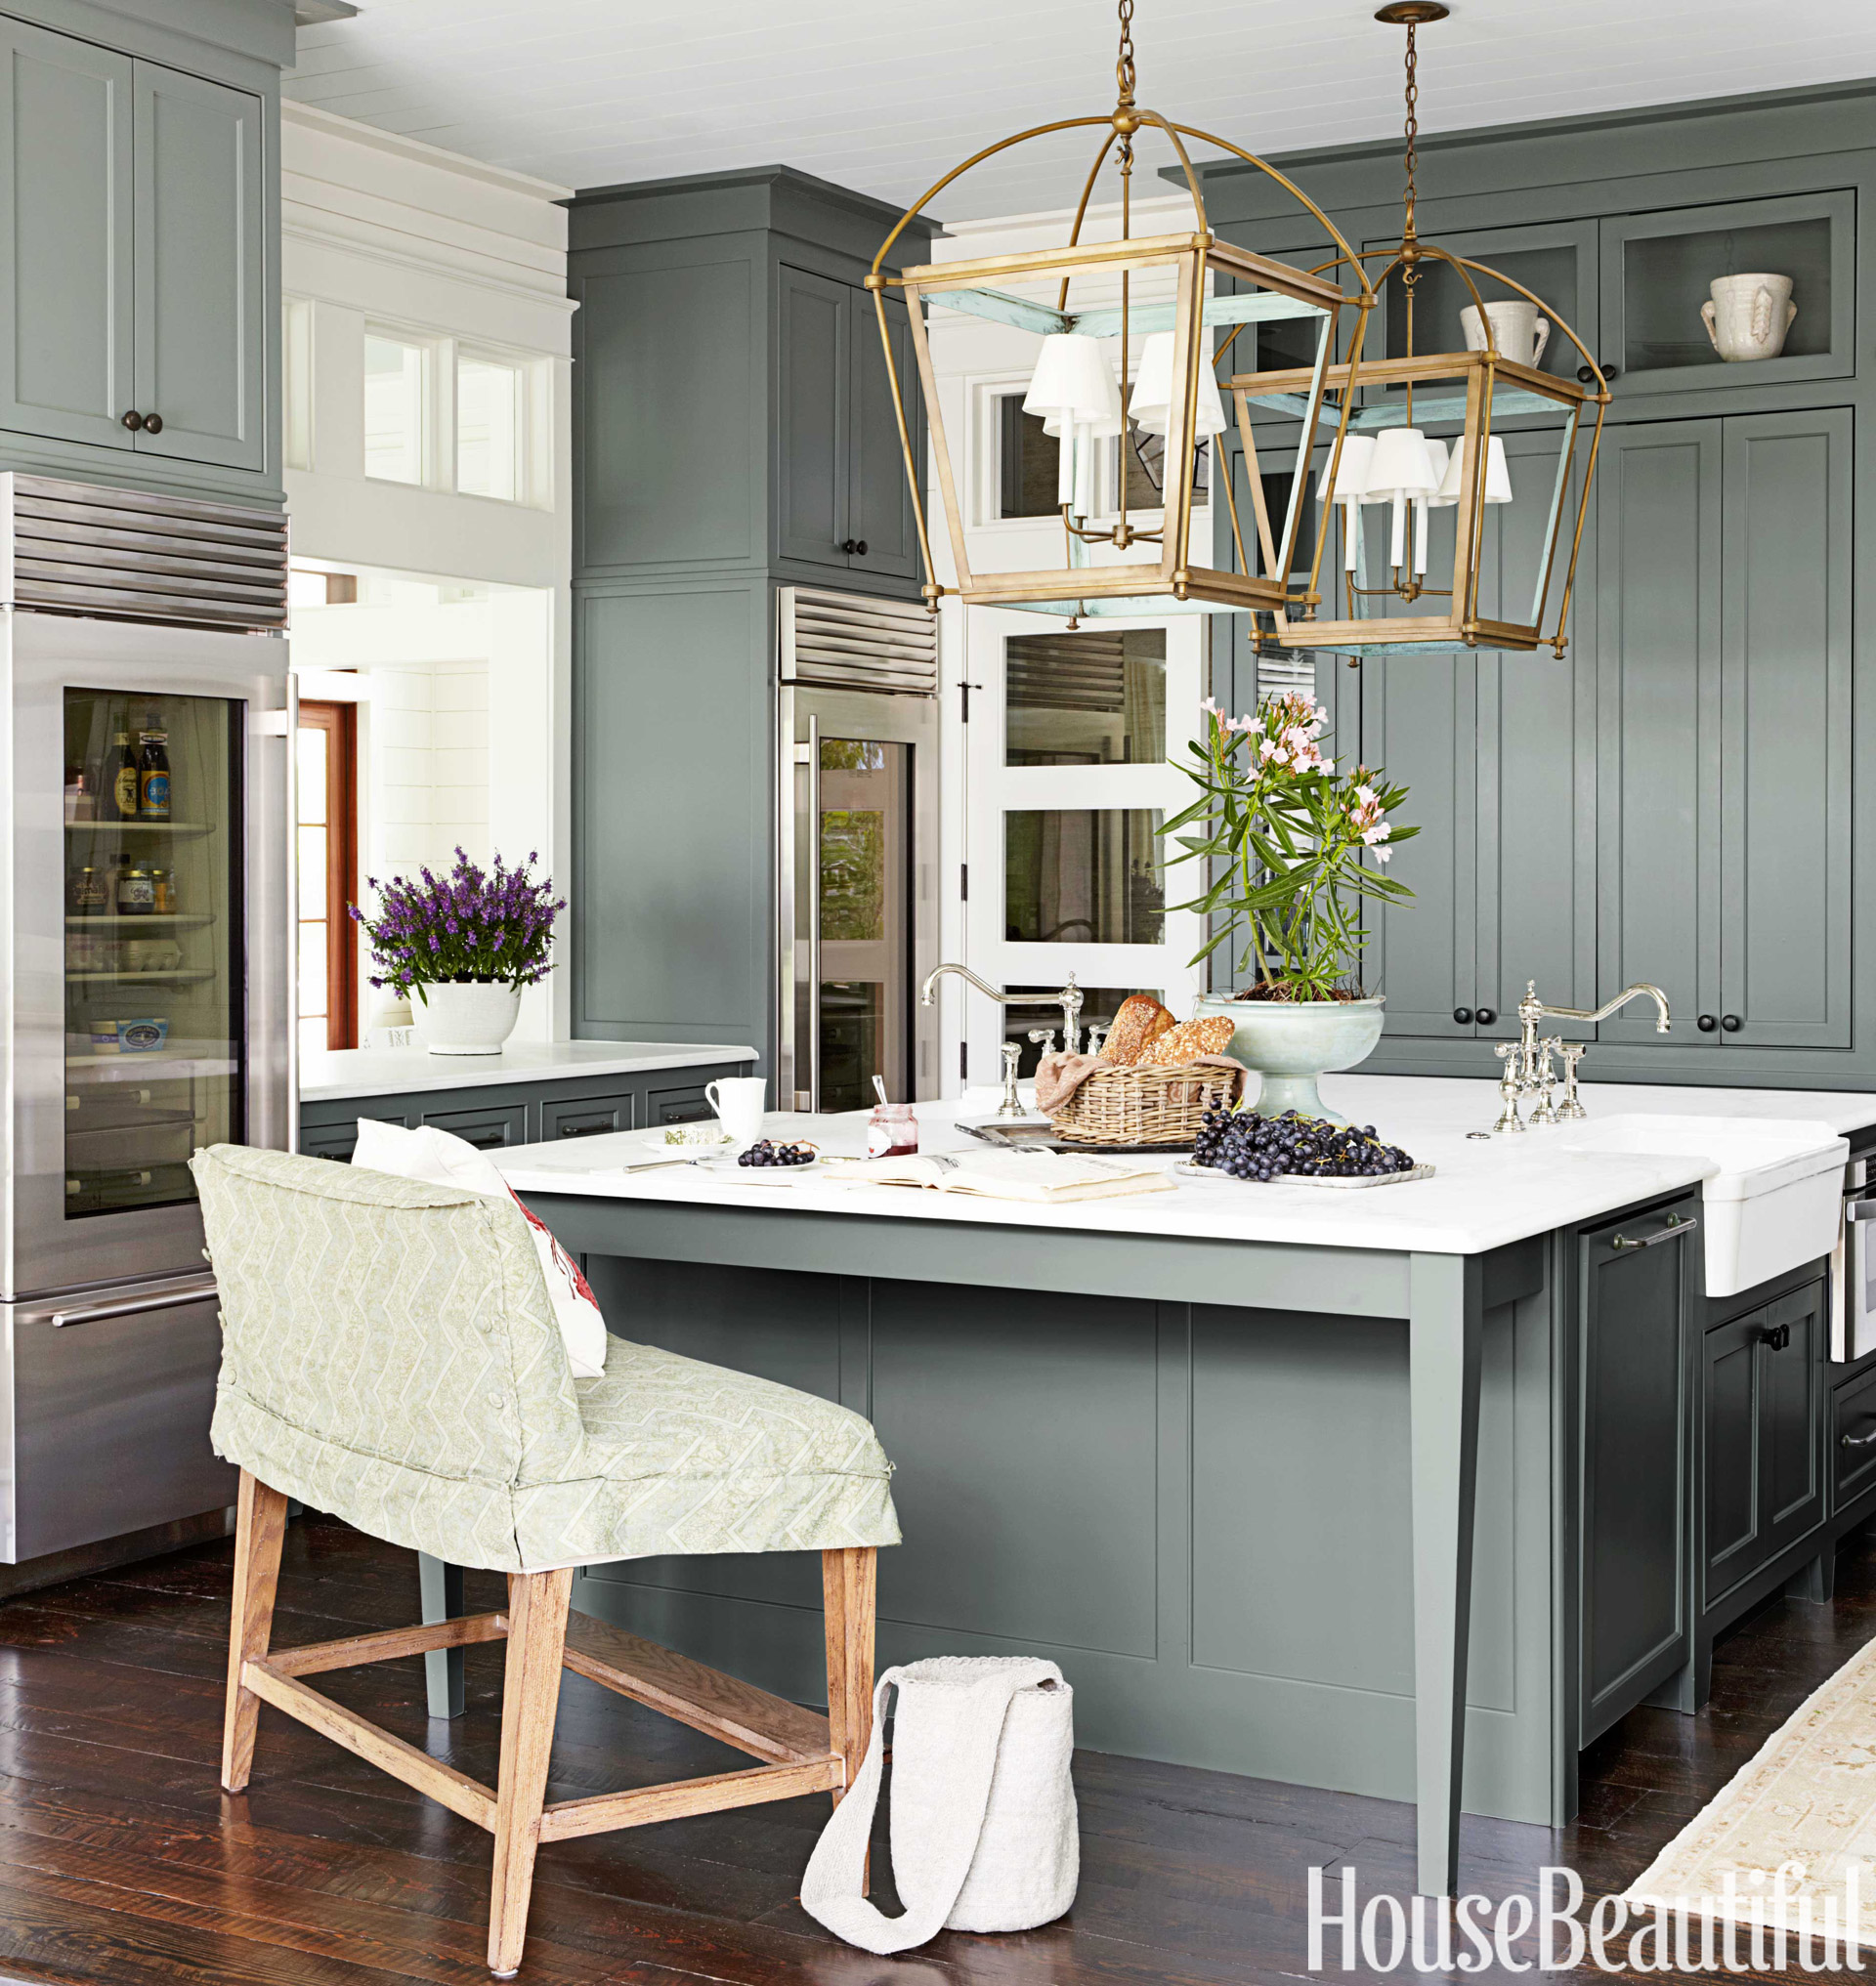 Ocean Inspired Decorating Ocean Inspired Kitchen Urban Grace Interiors Kitchen